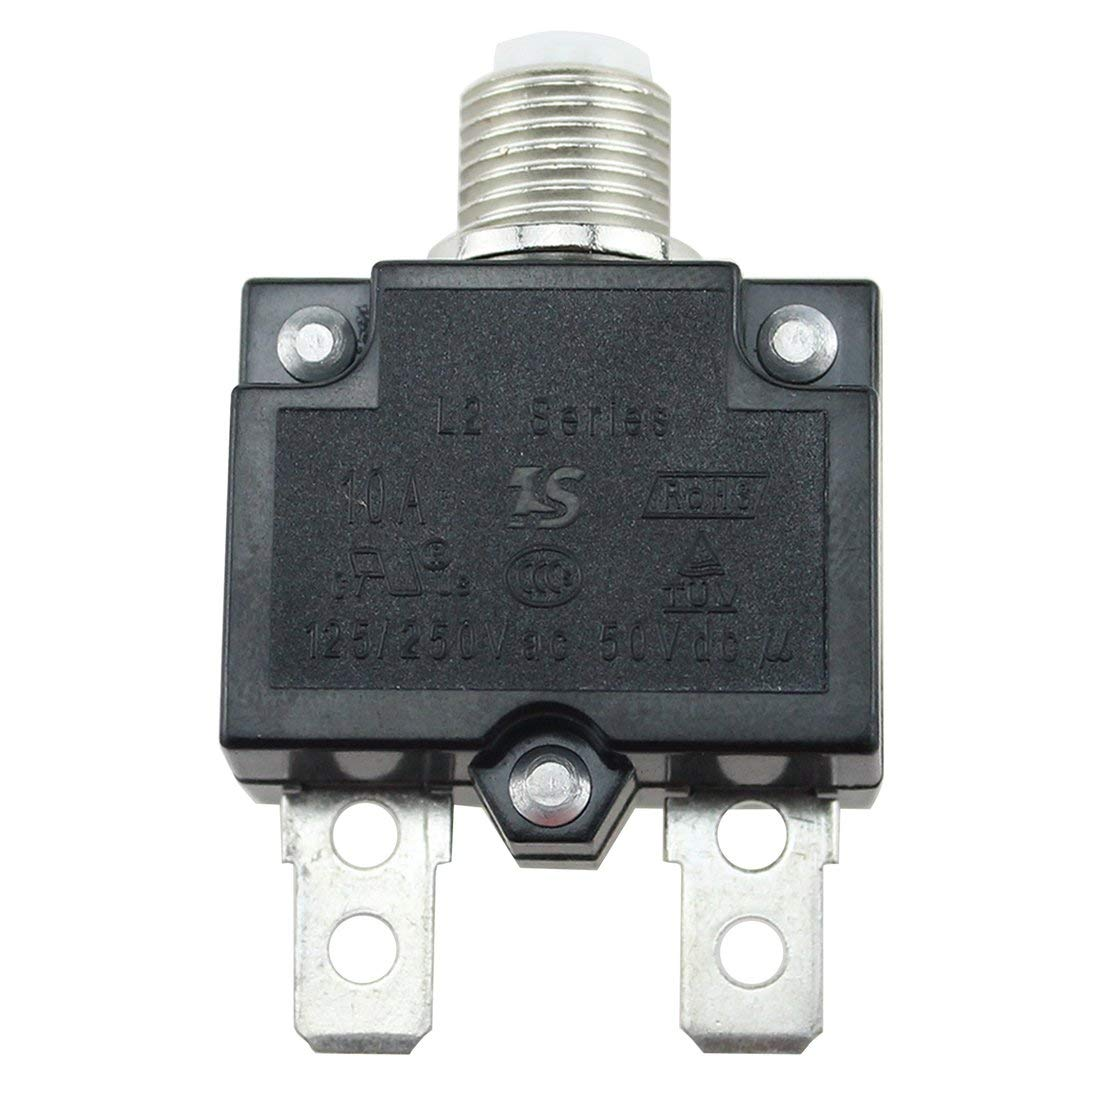 Baynne 5A//10A//15A//20A//30A Circuit Breaker Waterproof Push Button Resettable Thermal Fuse Circuit Breaker Panel Mount